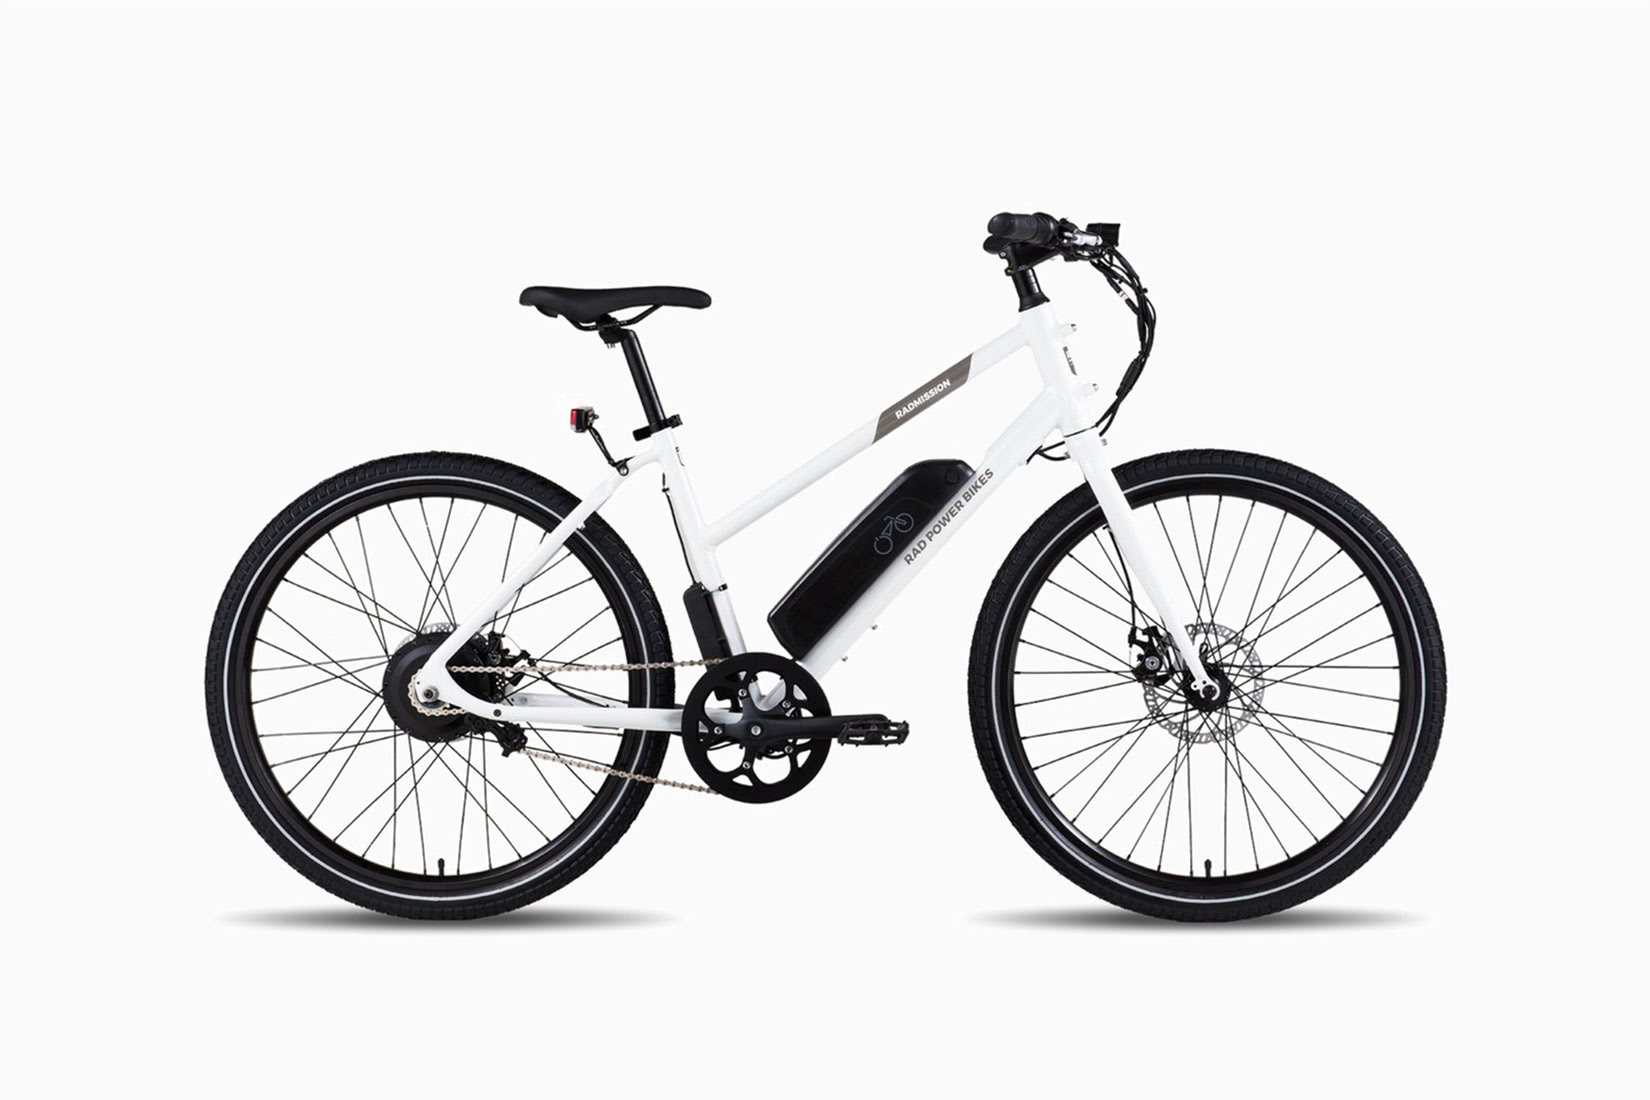 rad power bikes review radmission luxe digital